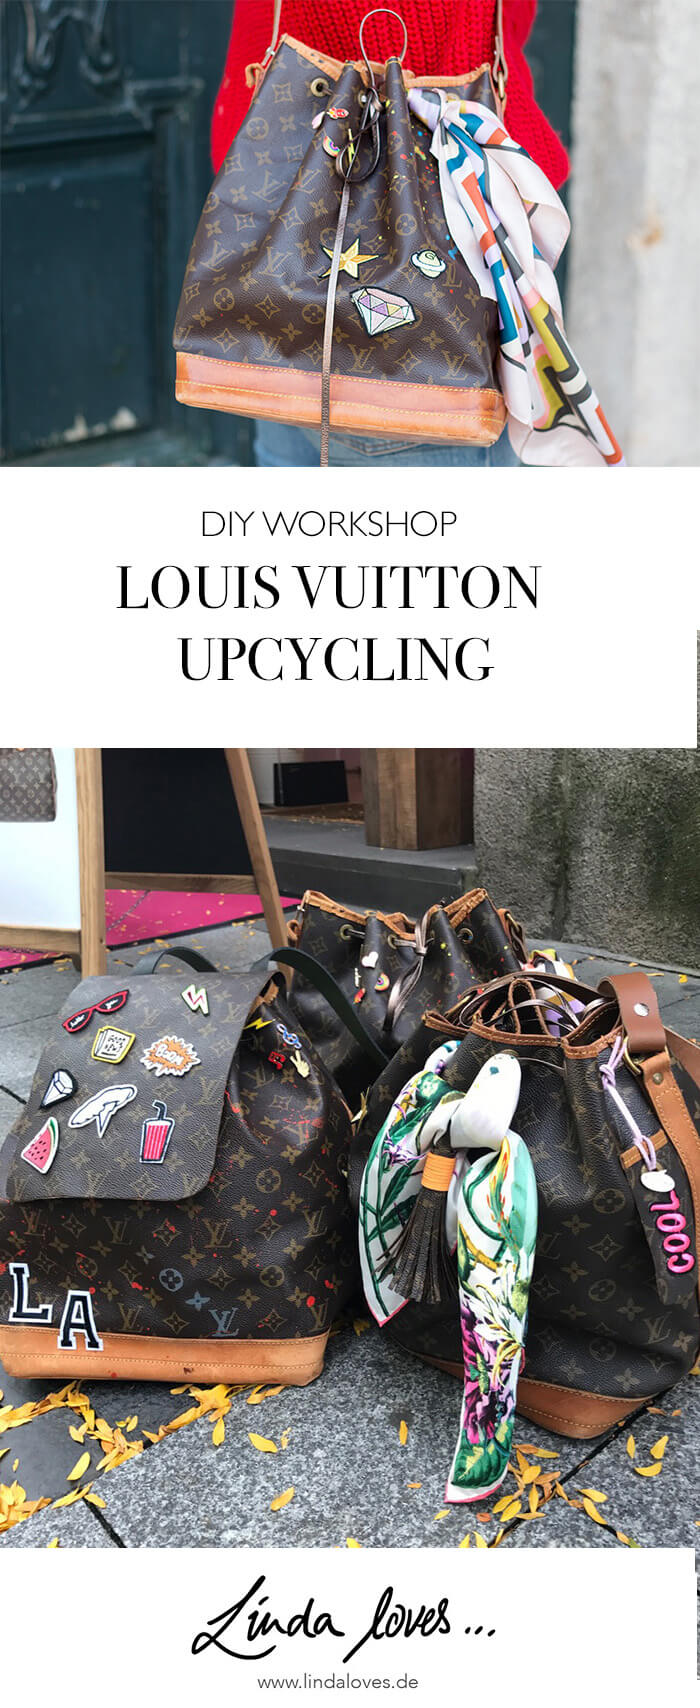 Louis Vuitton Upcycling Workshop - DIY mit Linda loves